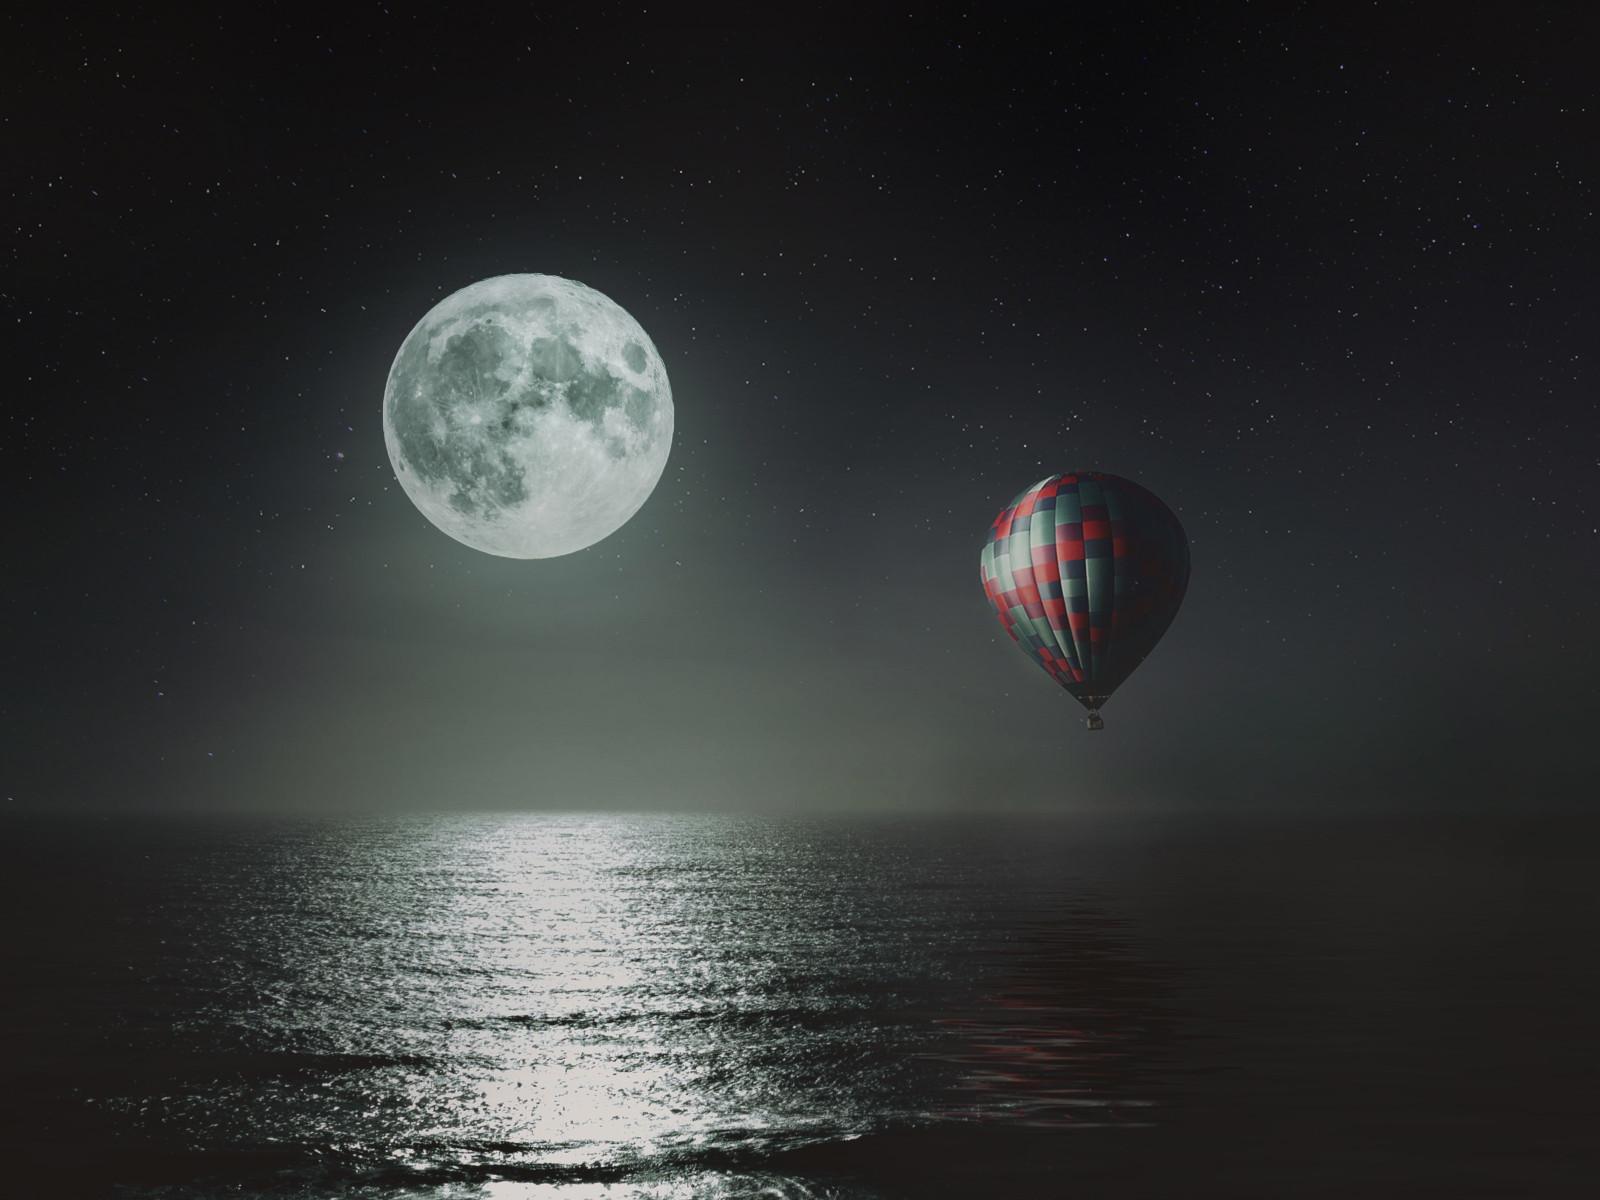 Hot air balloon over the night sky wallpaper 1600x1200